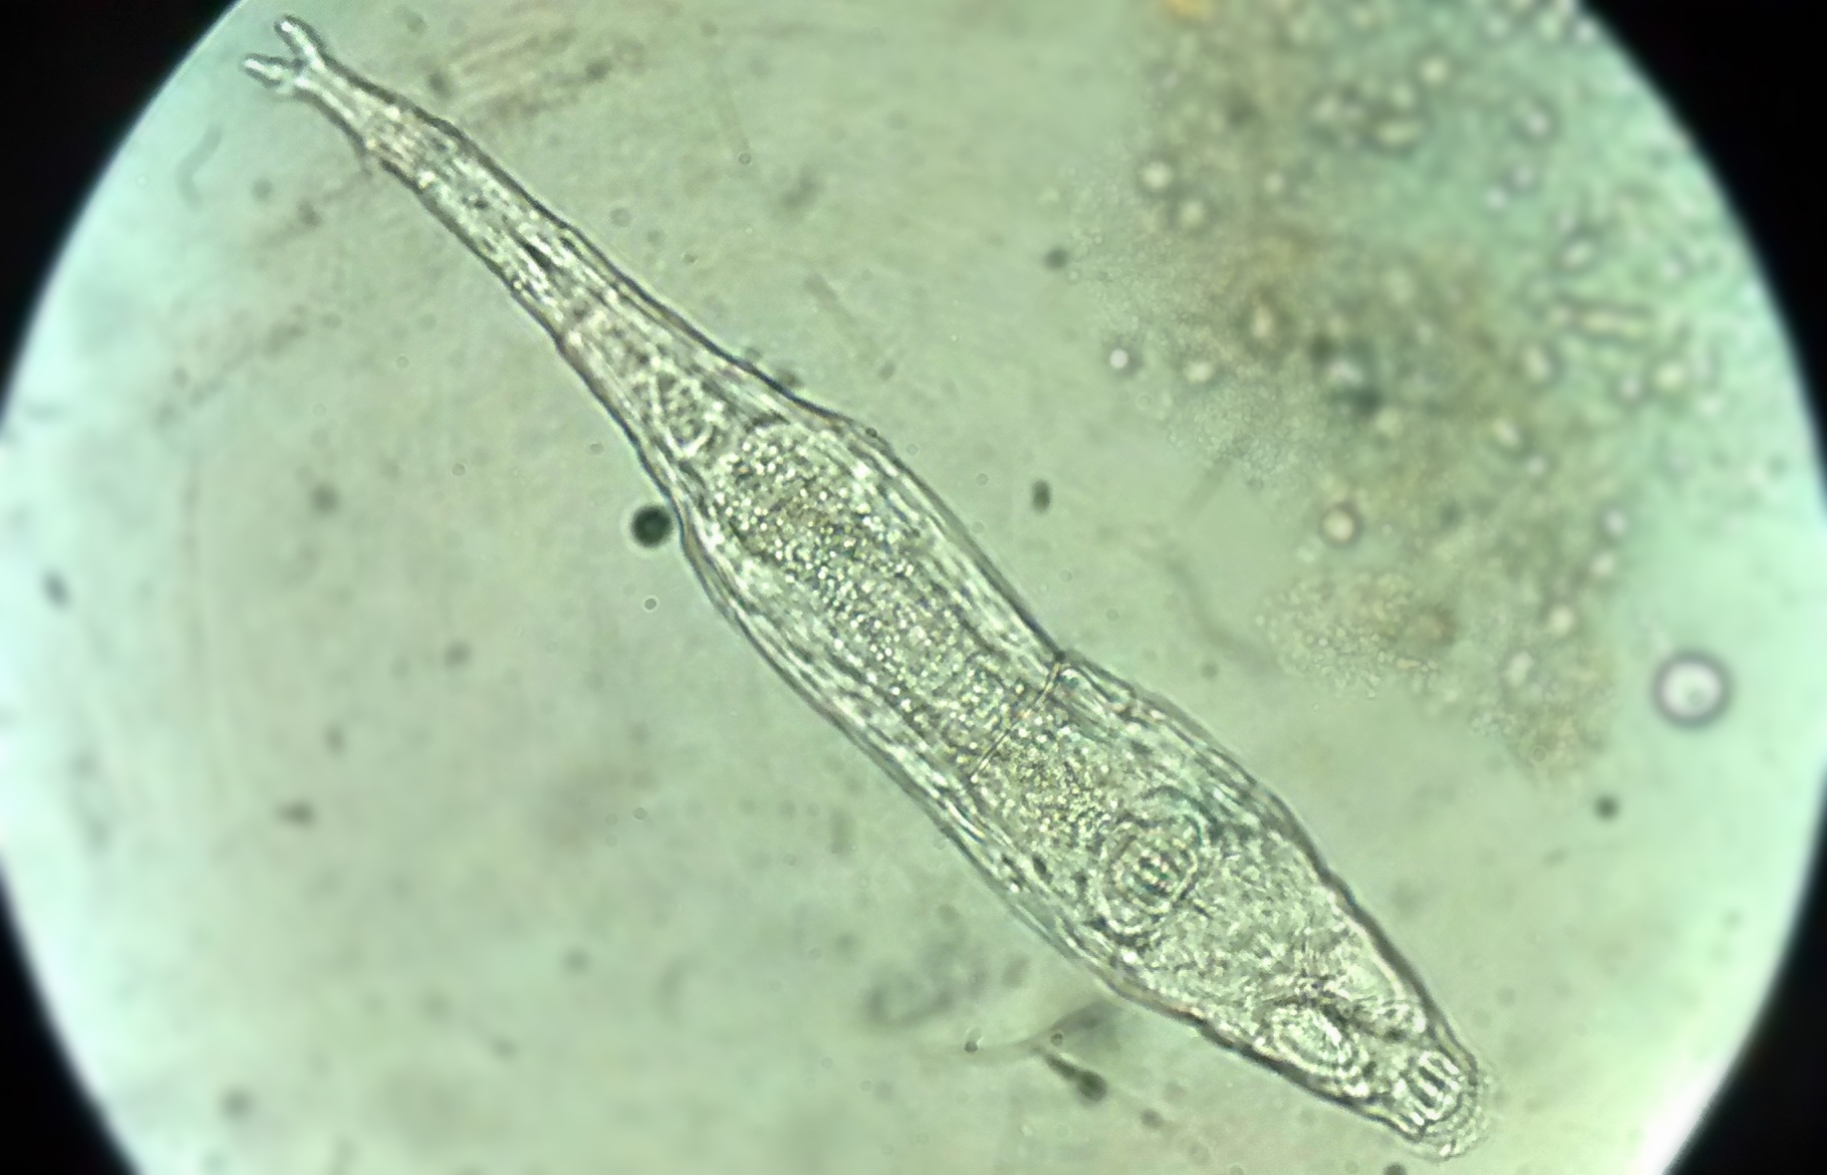 The animal that frozen 24,000 years ago, a rotifer.